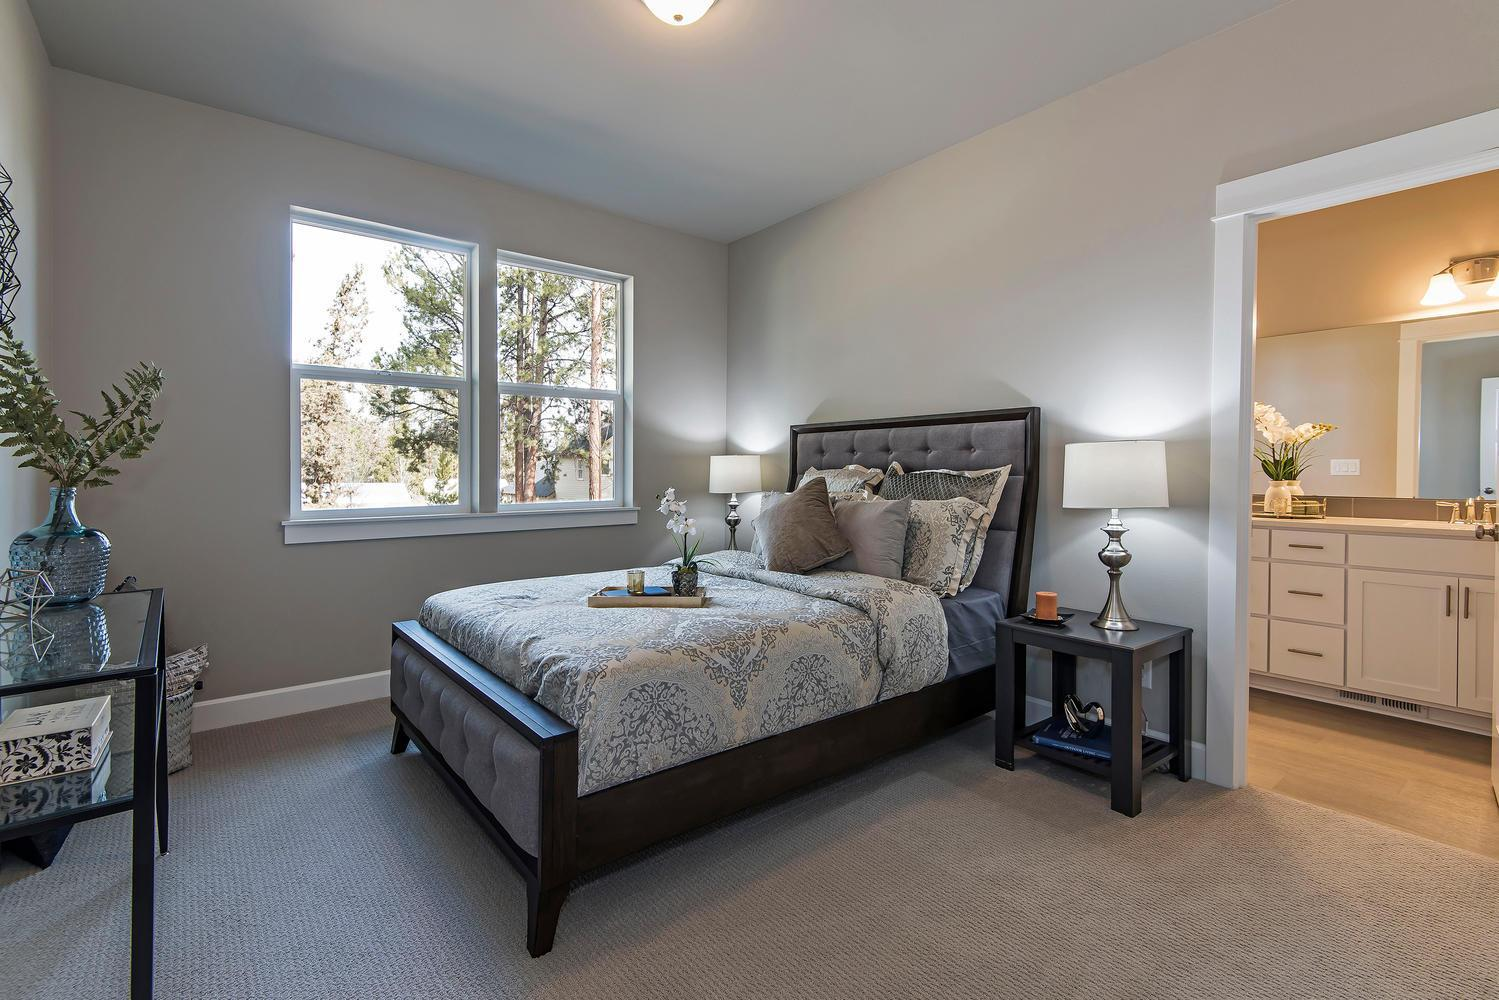 Bedroom featured in The Tamarack By Woodhill Homes in Central Oregon, OR